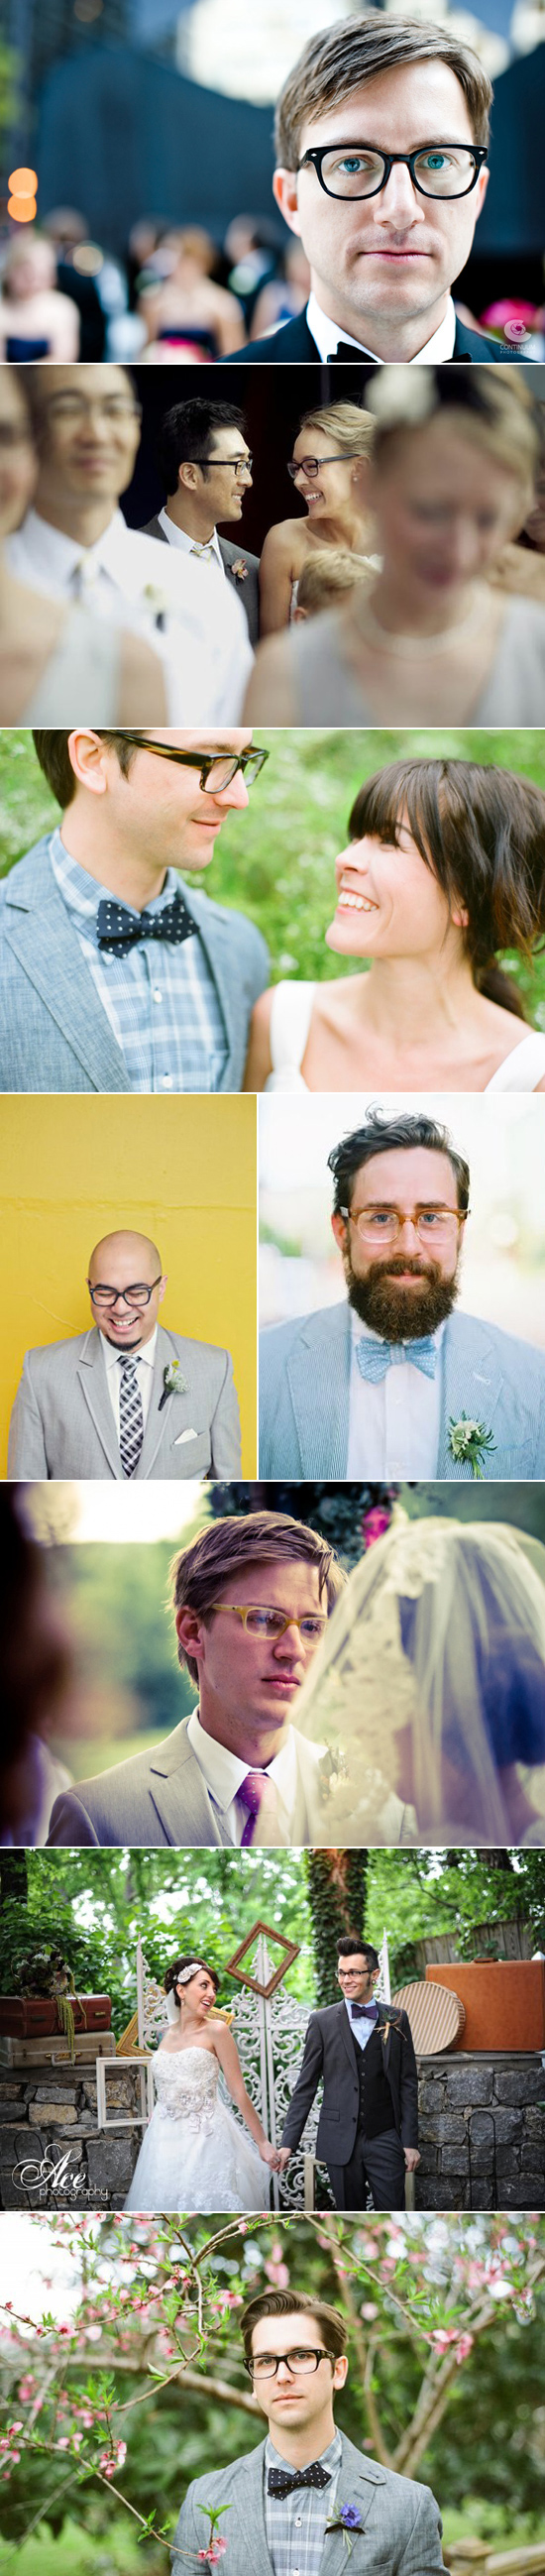 grooms wearing glasses Grooms Wearing Glasses